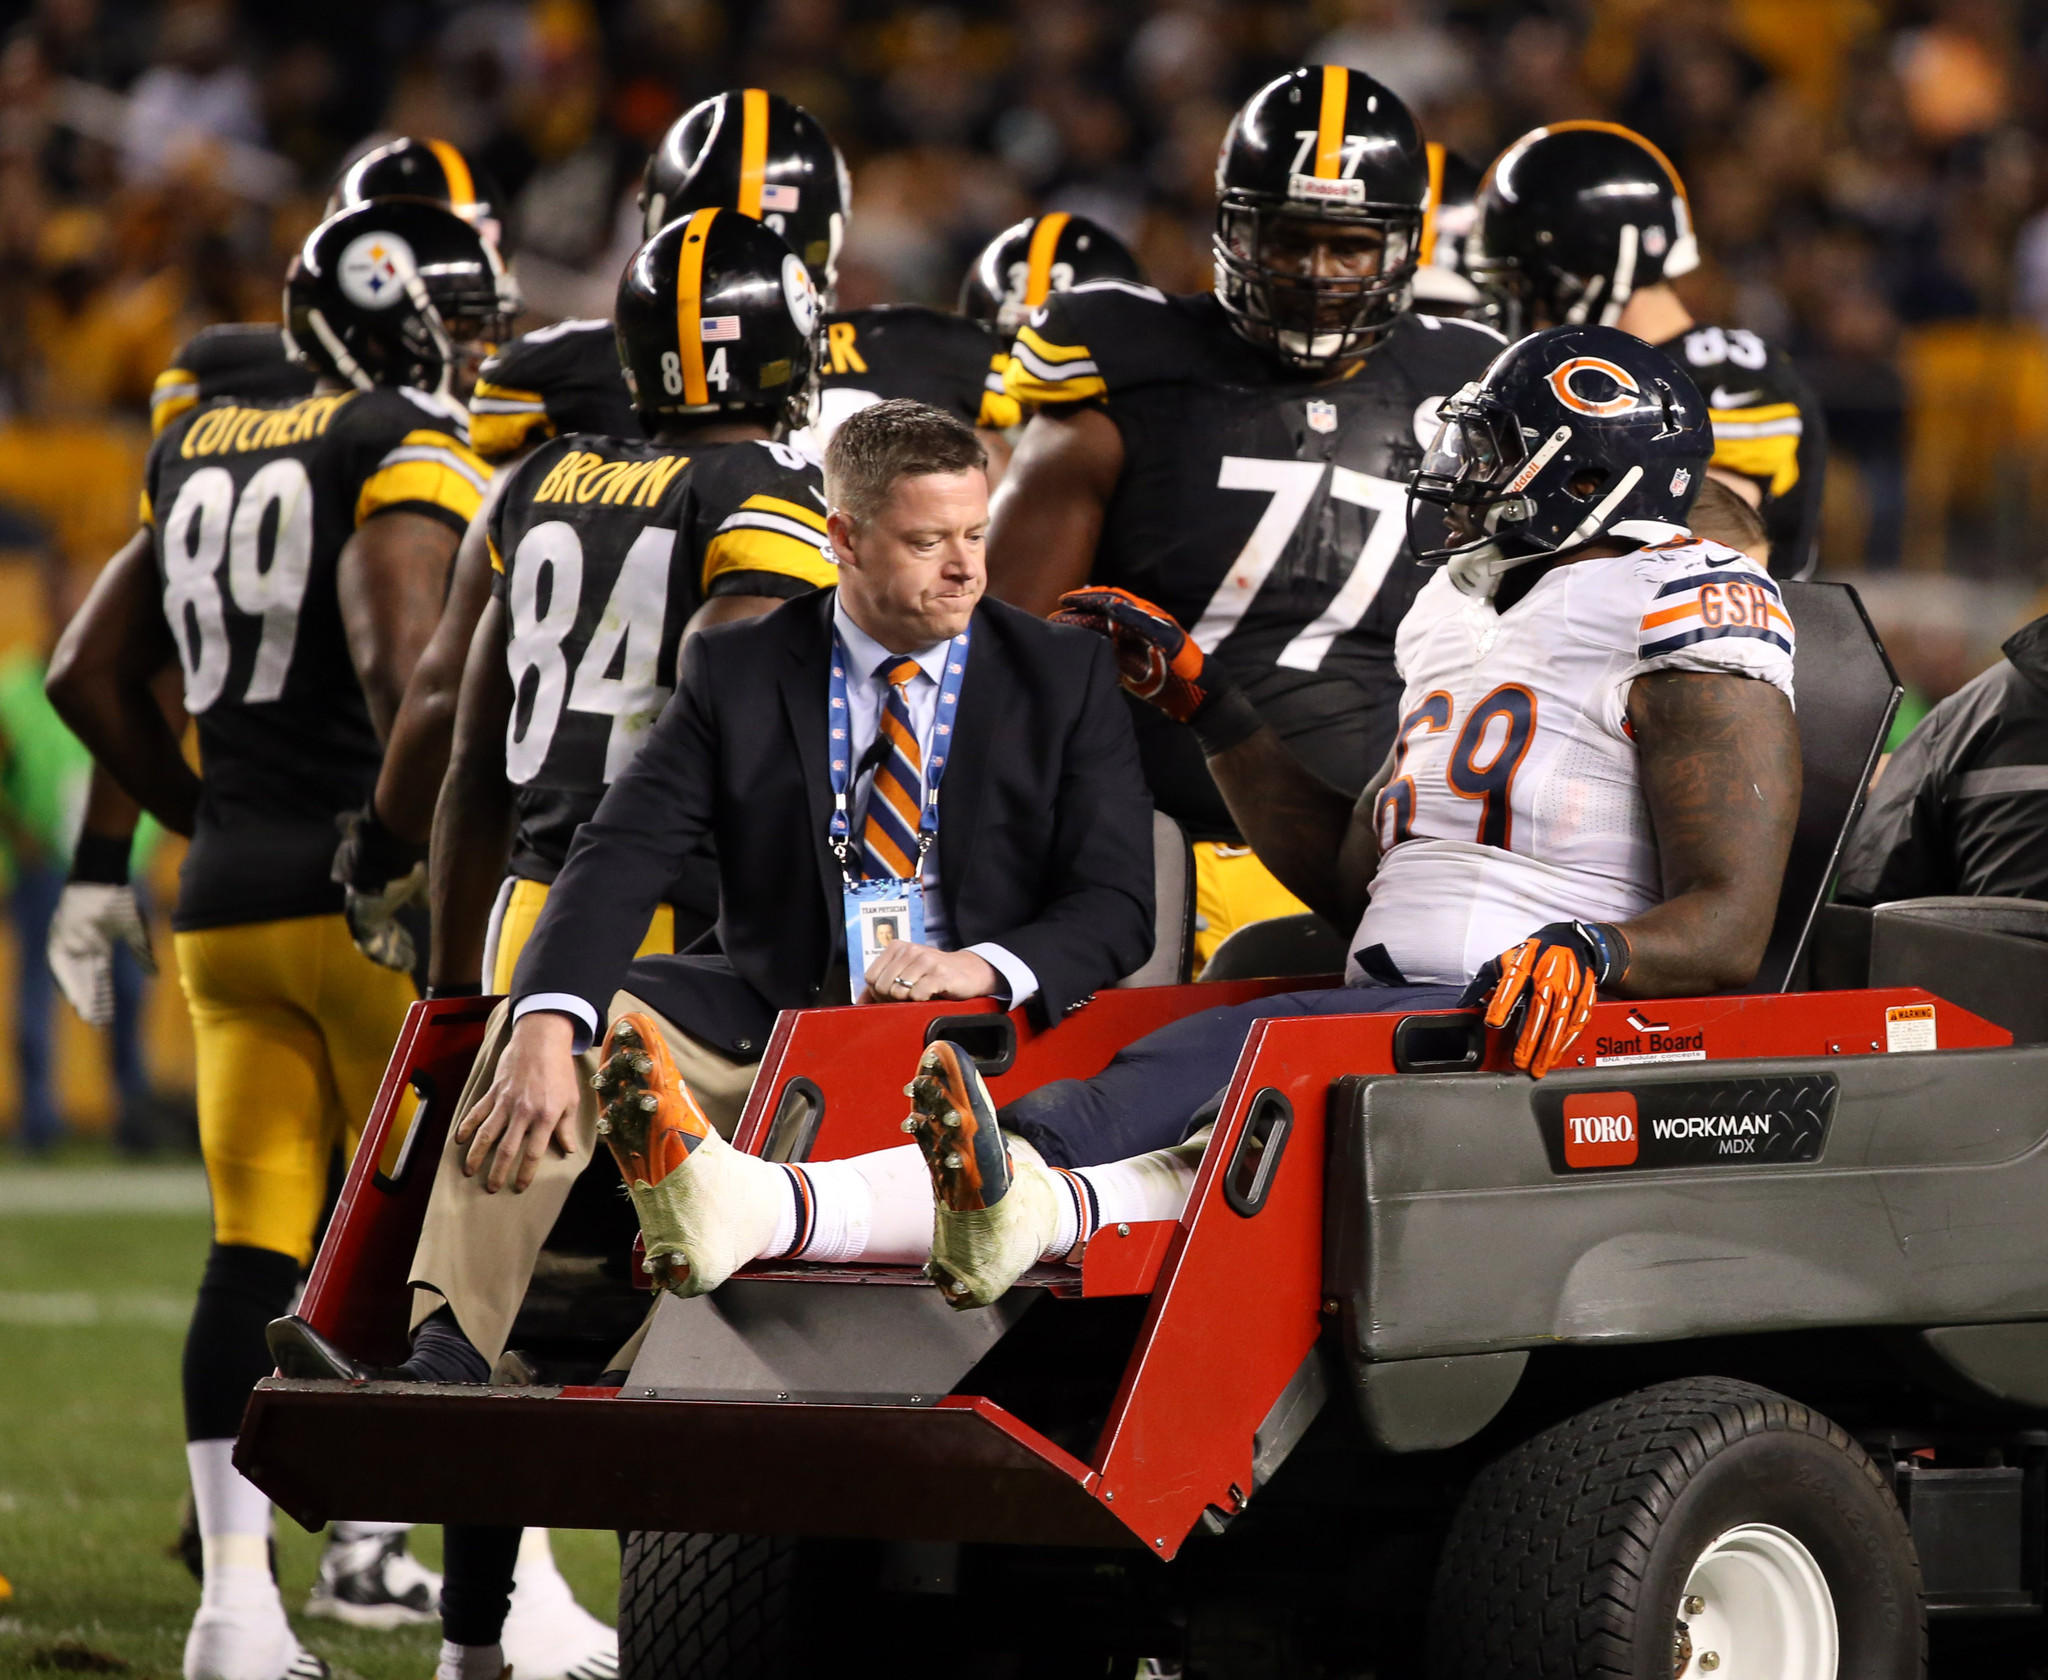 Bears defensive tackle Henry Melton is taken to the locker room with an injury against the Steelers.